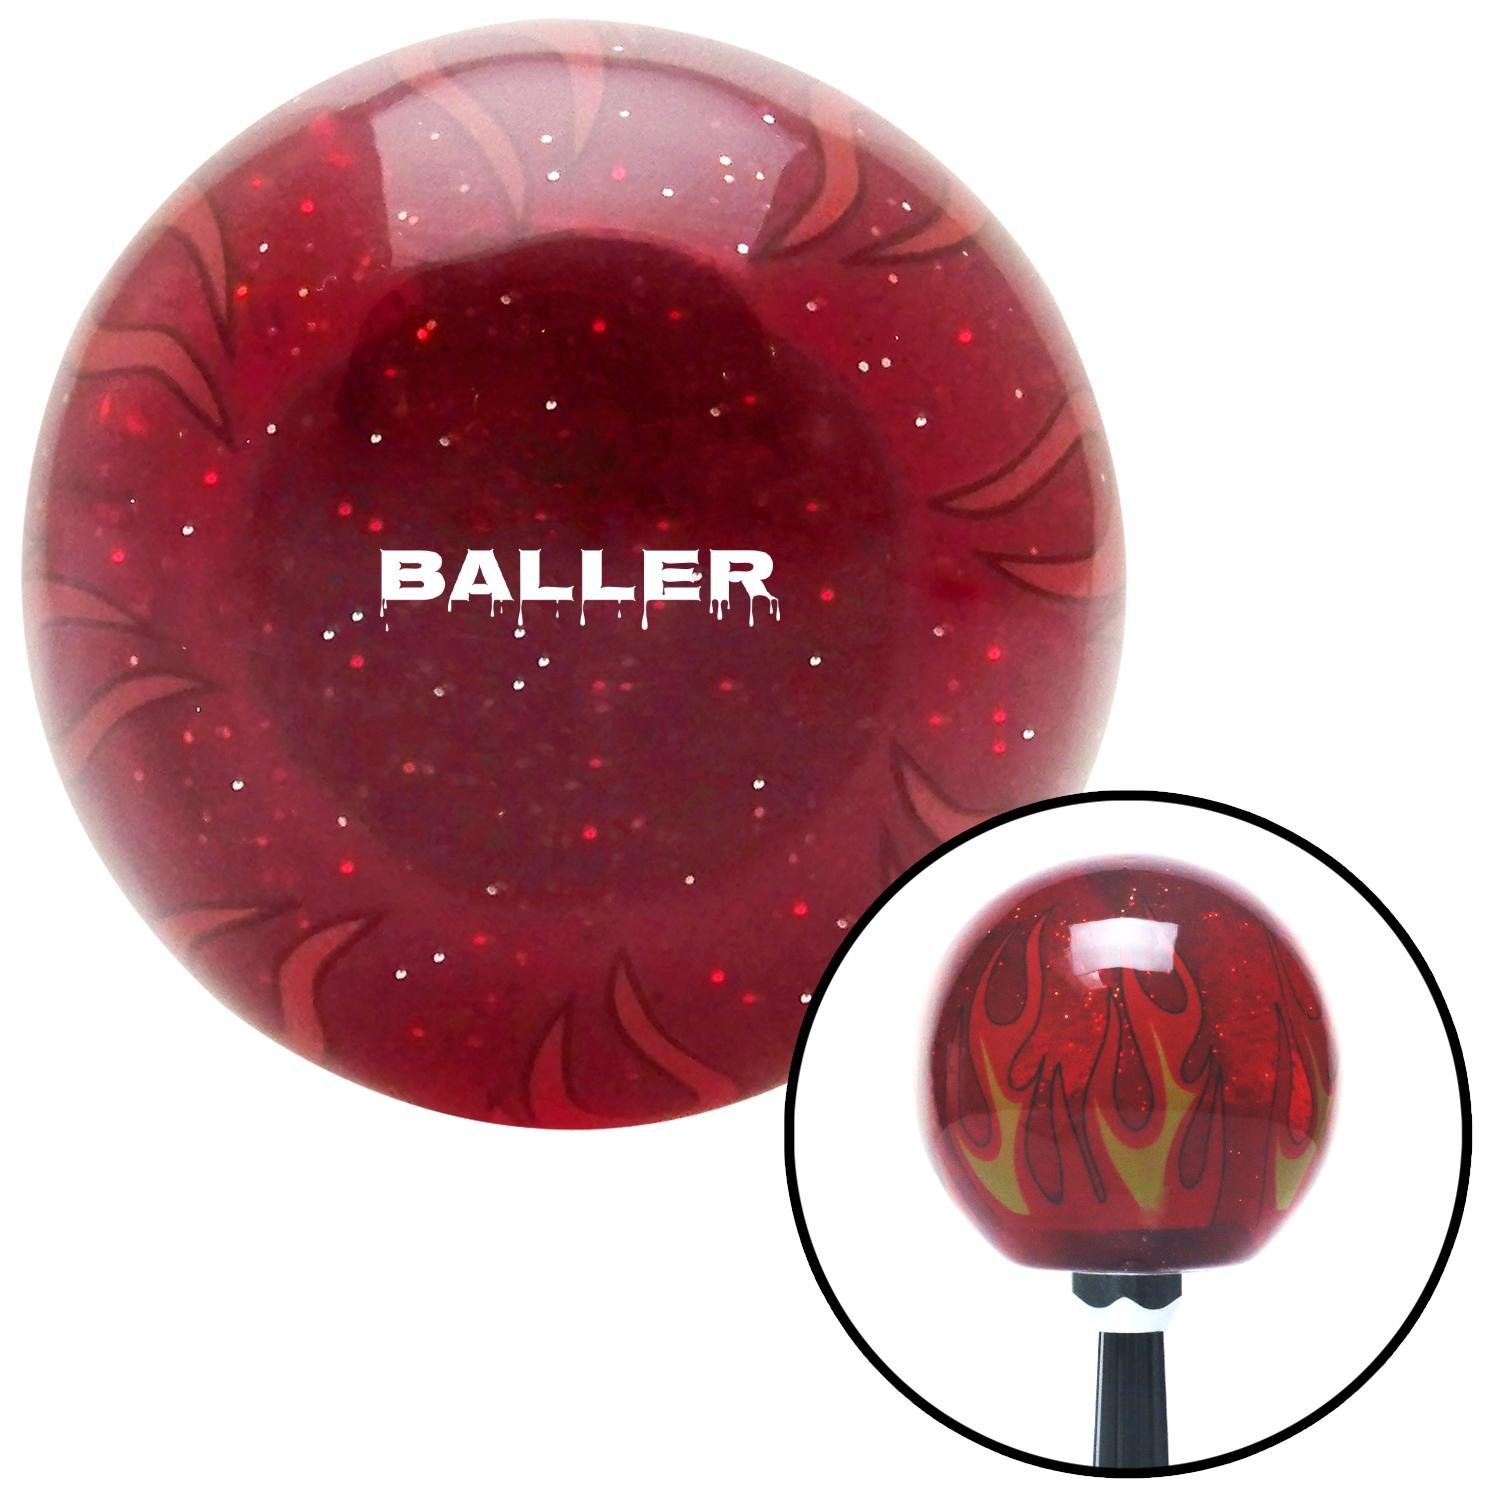 American Shifter 297324 Shift Knob White Baller Red Flame Metal Flake with M16 x 1.5 Insert